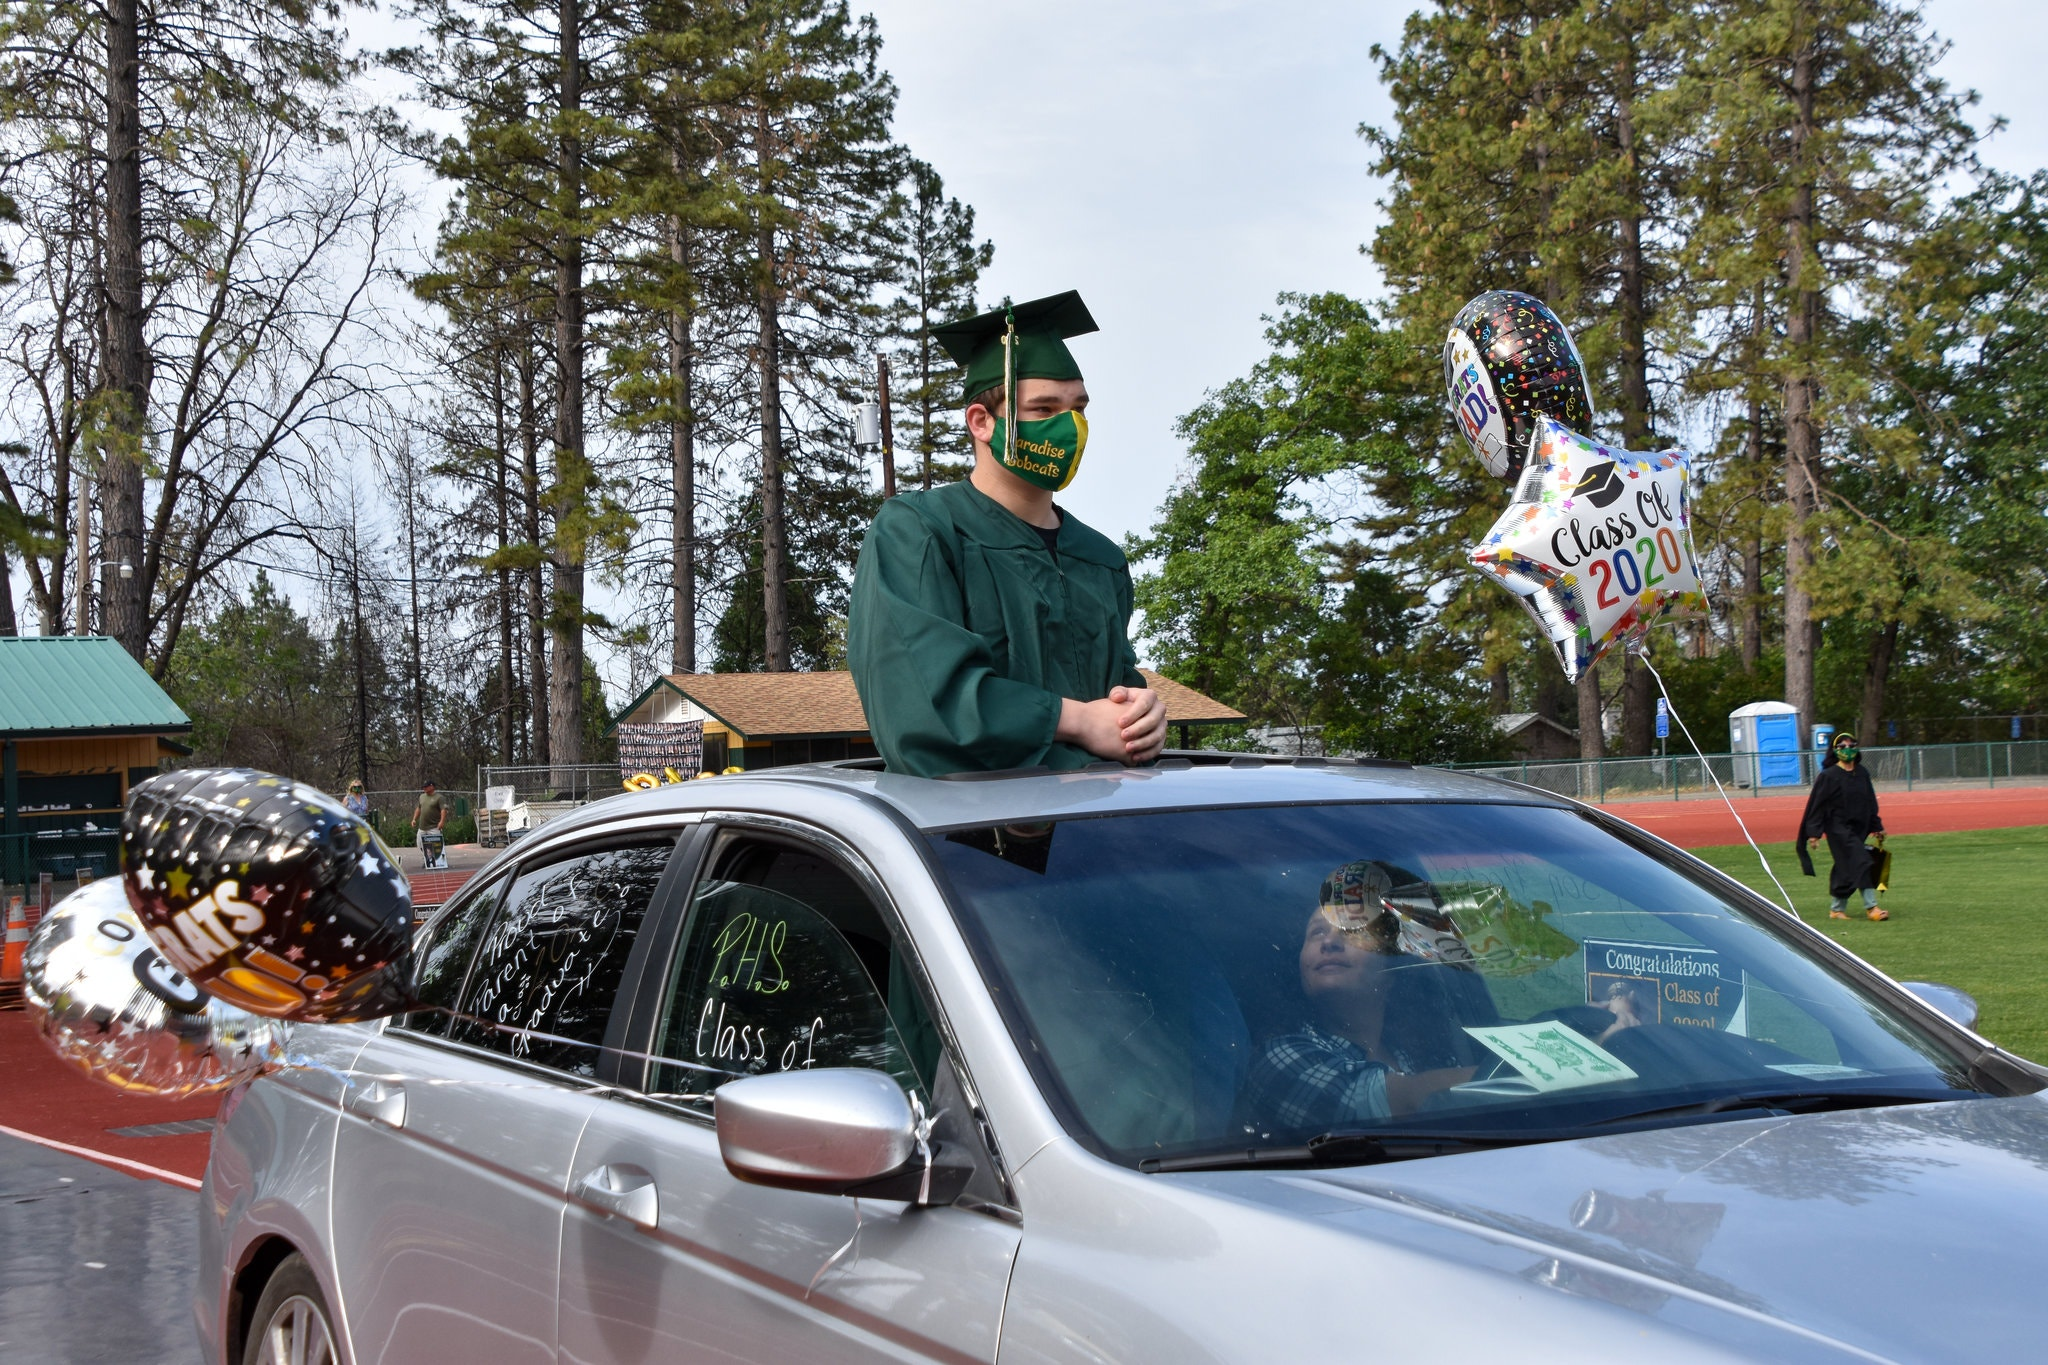 After arriving on Paradise High School's Om Wraith field for the school's first ever drive-in graduation ceremony, Brian Enright, a senior, takes in the scene. Credit: Anne Daugherty